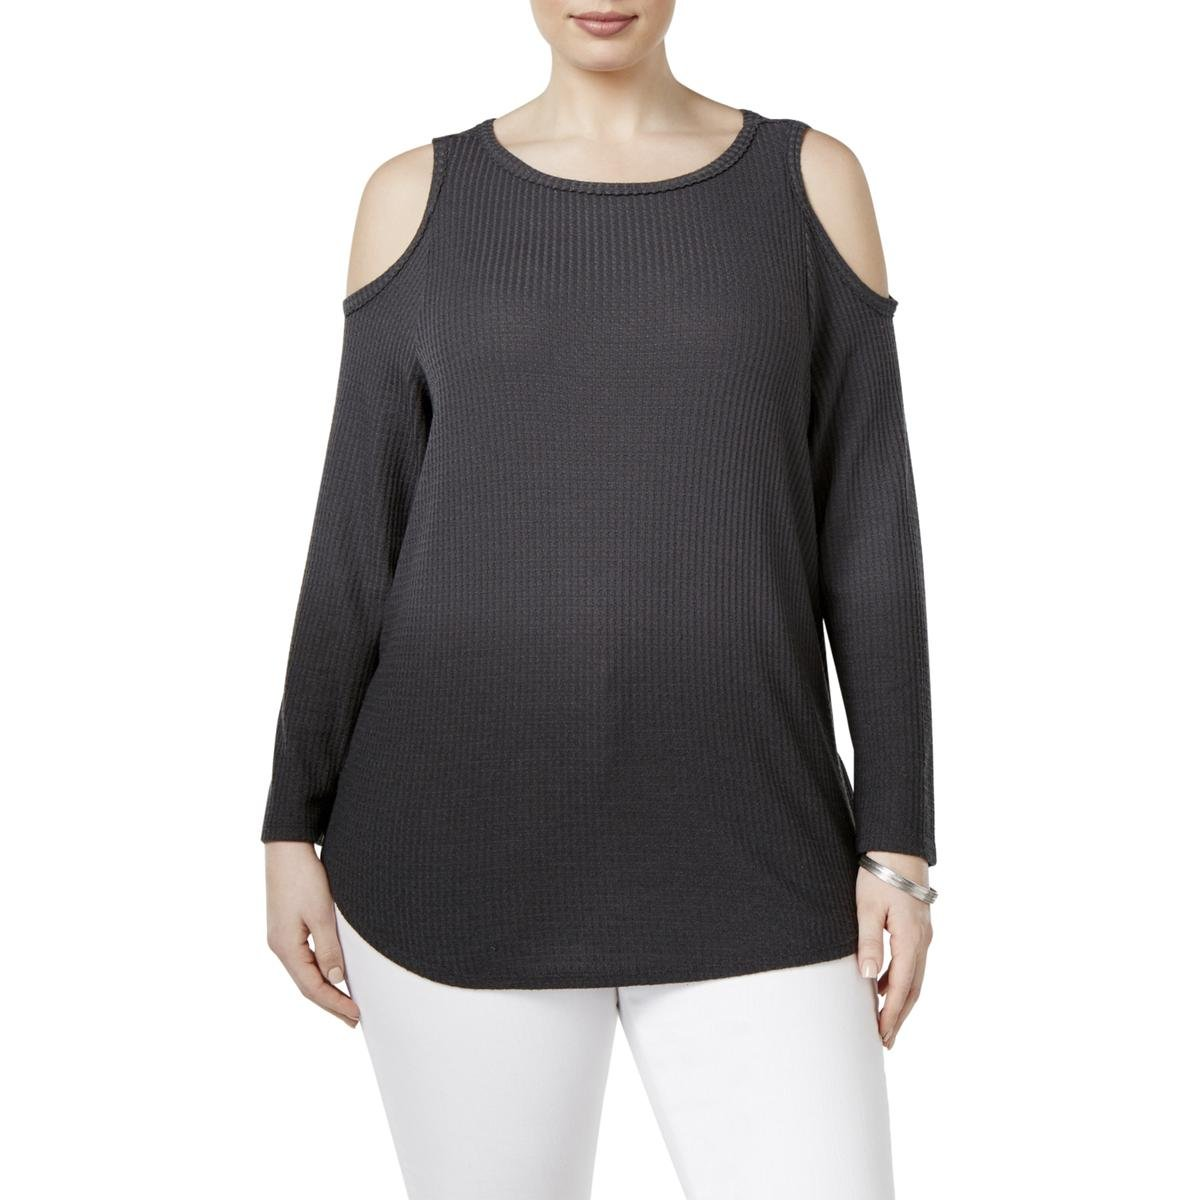 Style & Co. Womens Plus Jewel Neckline Cold Shoulder Pullover Sweater Black 3X